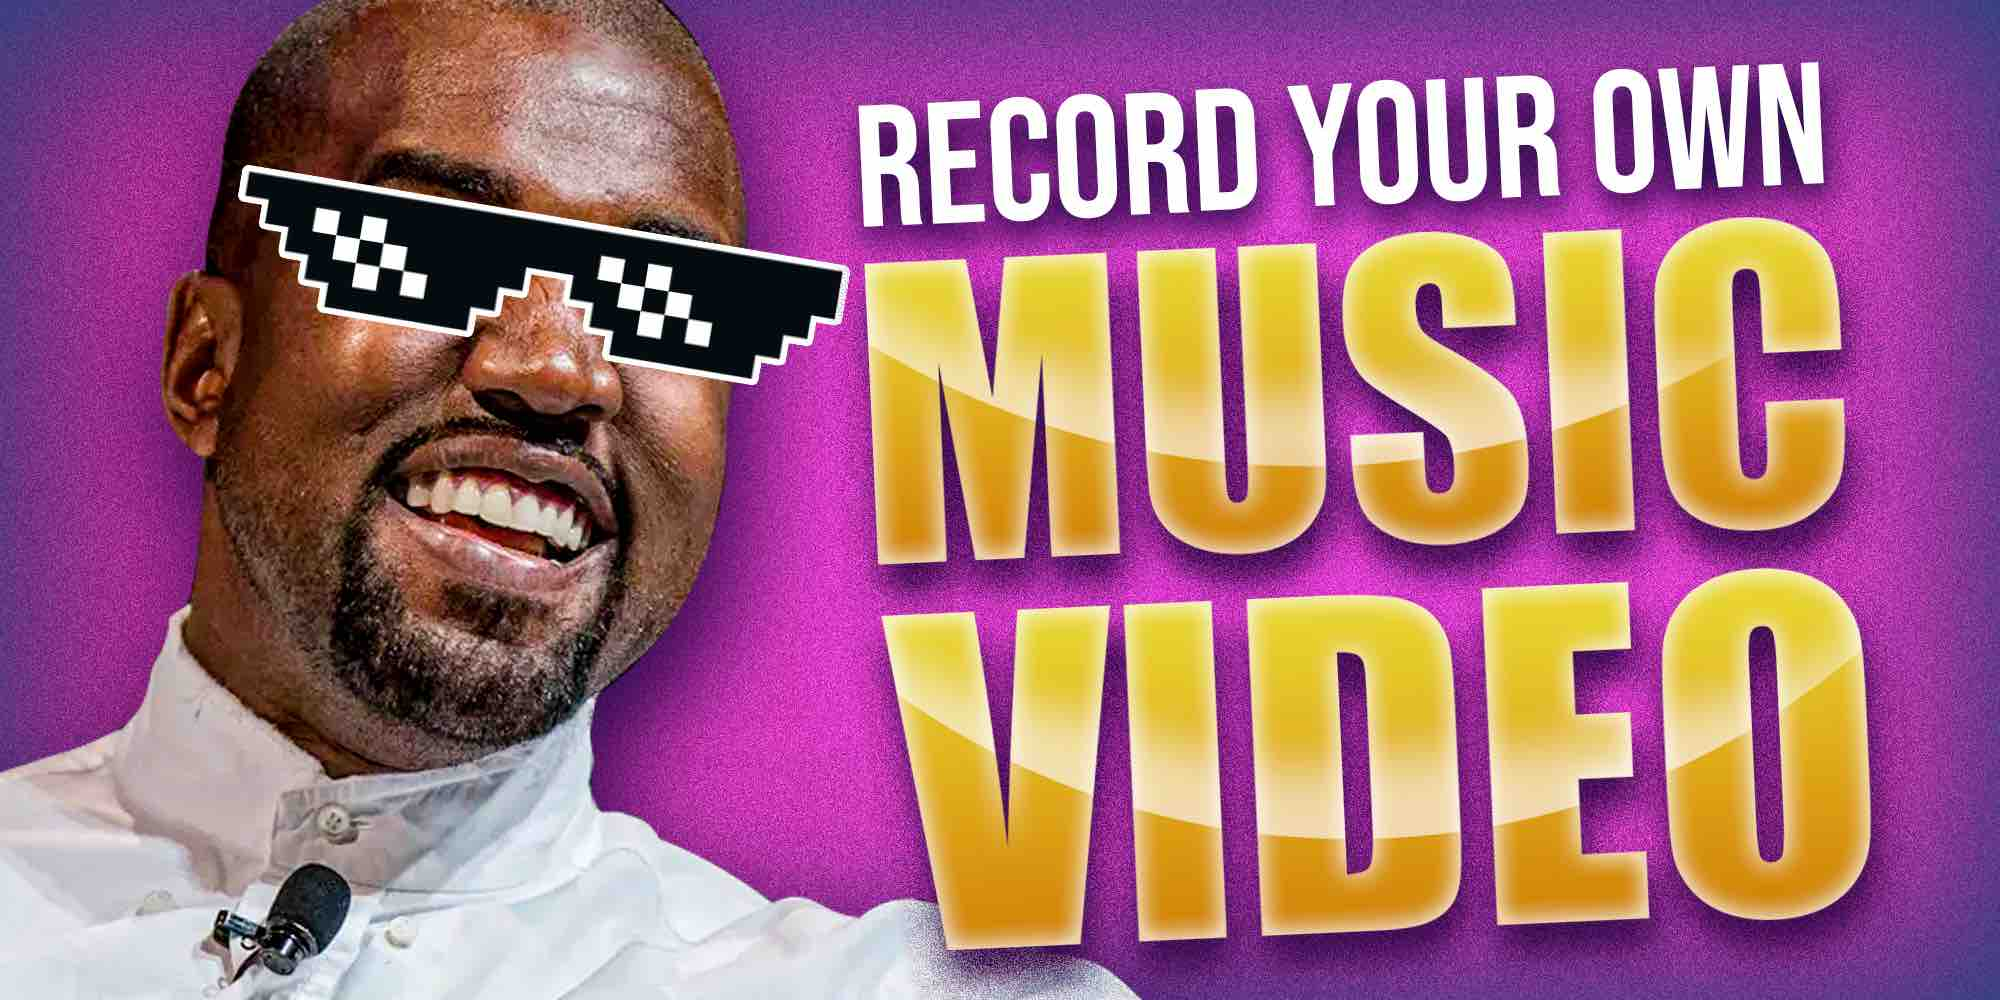 Record your own Music Video